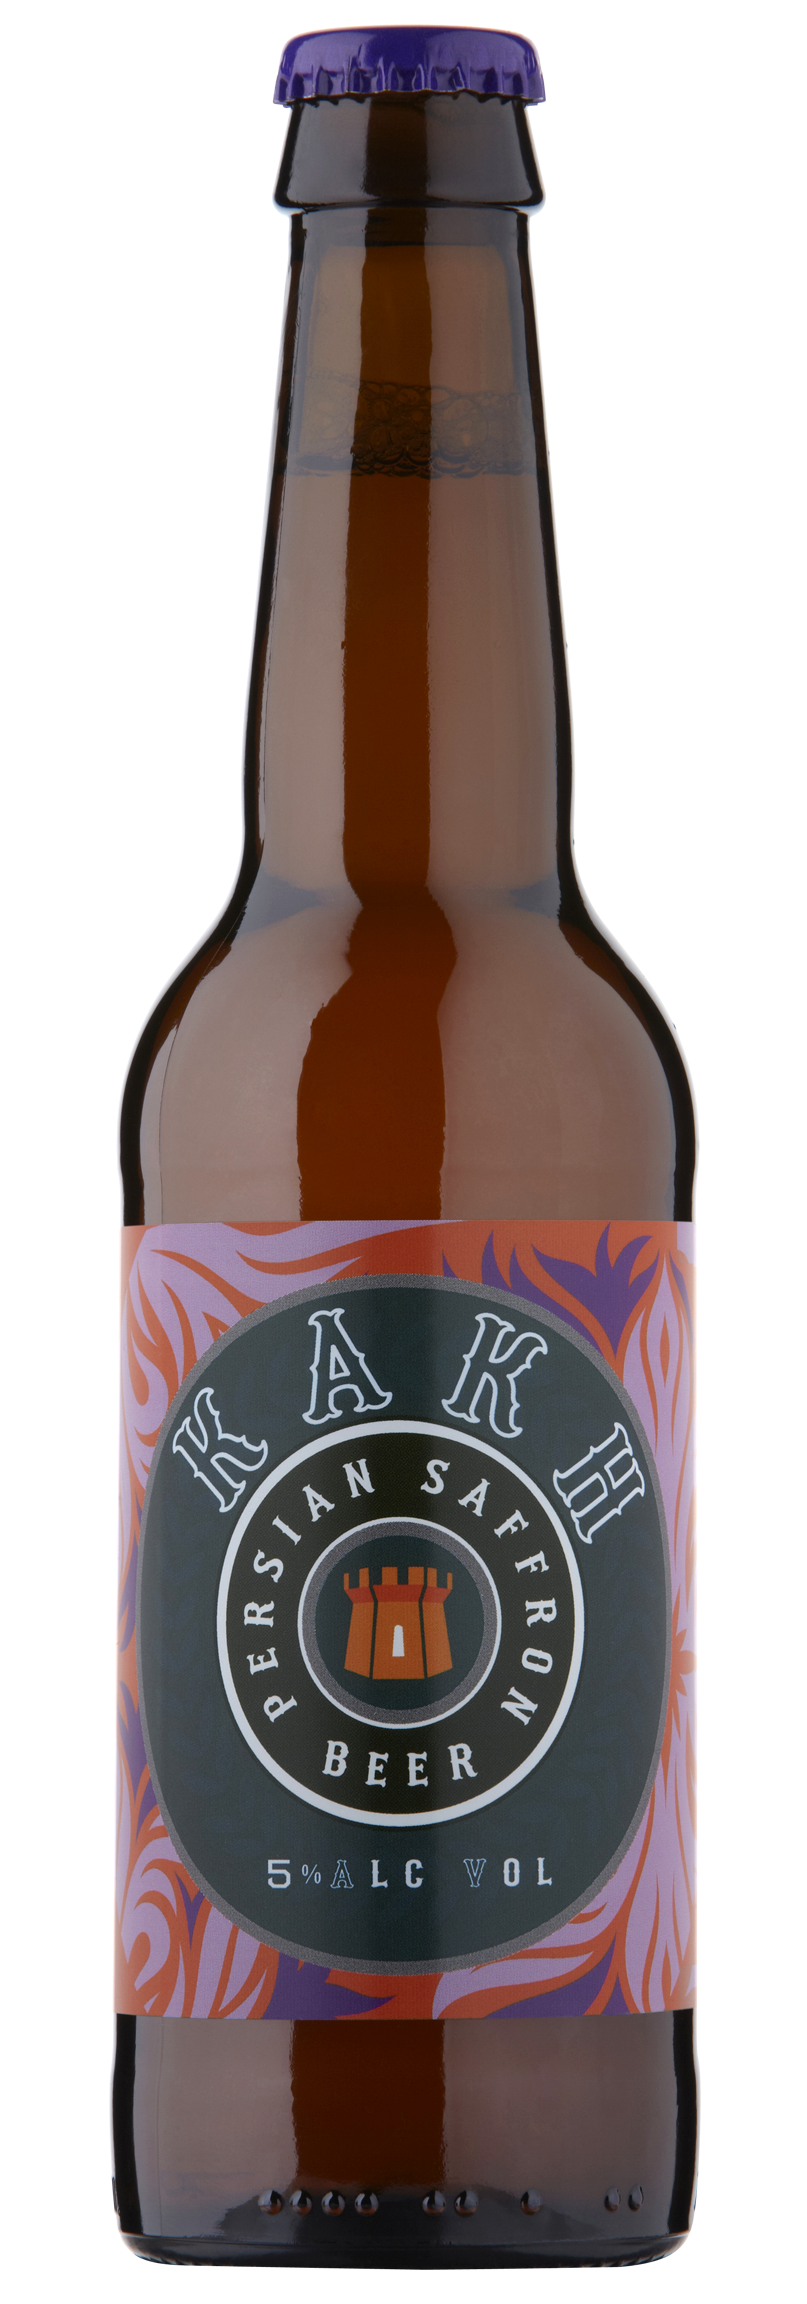 Image of Kakh Saffron Beer 12 x 330ml